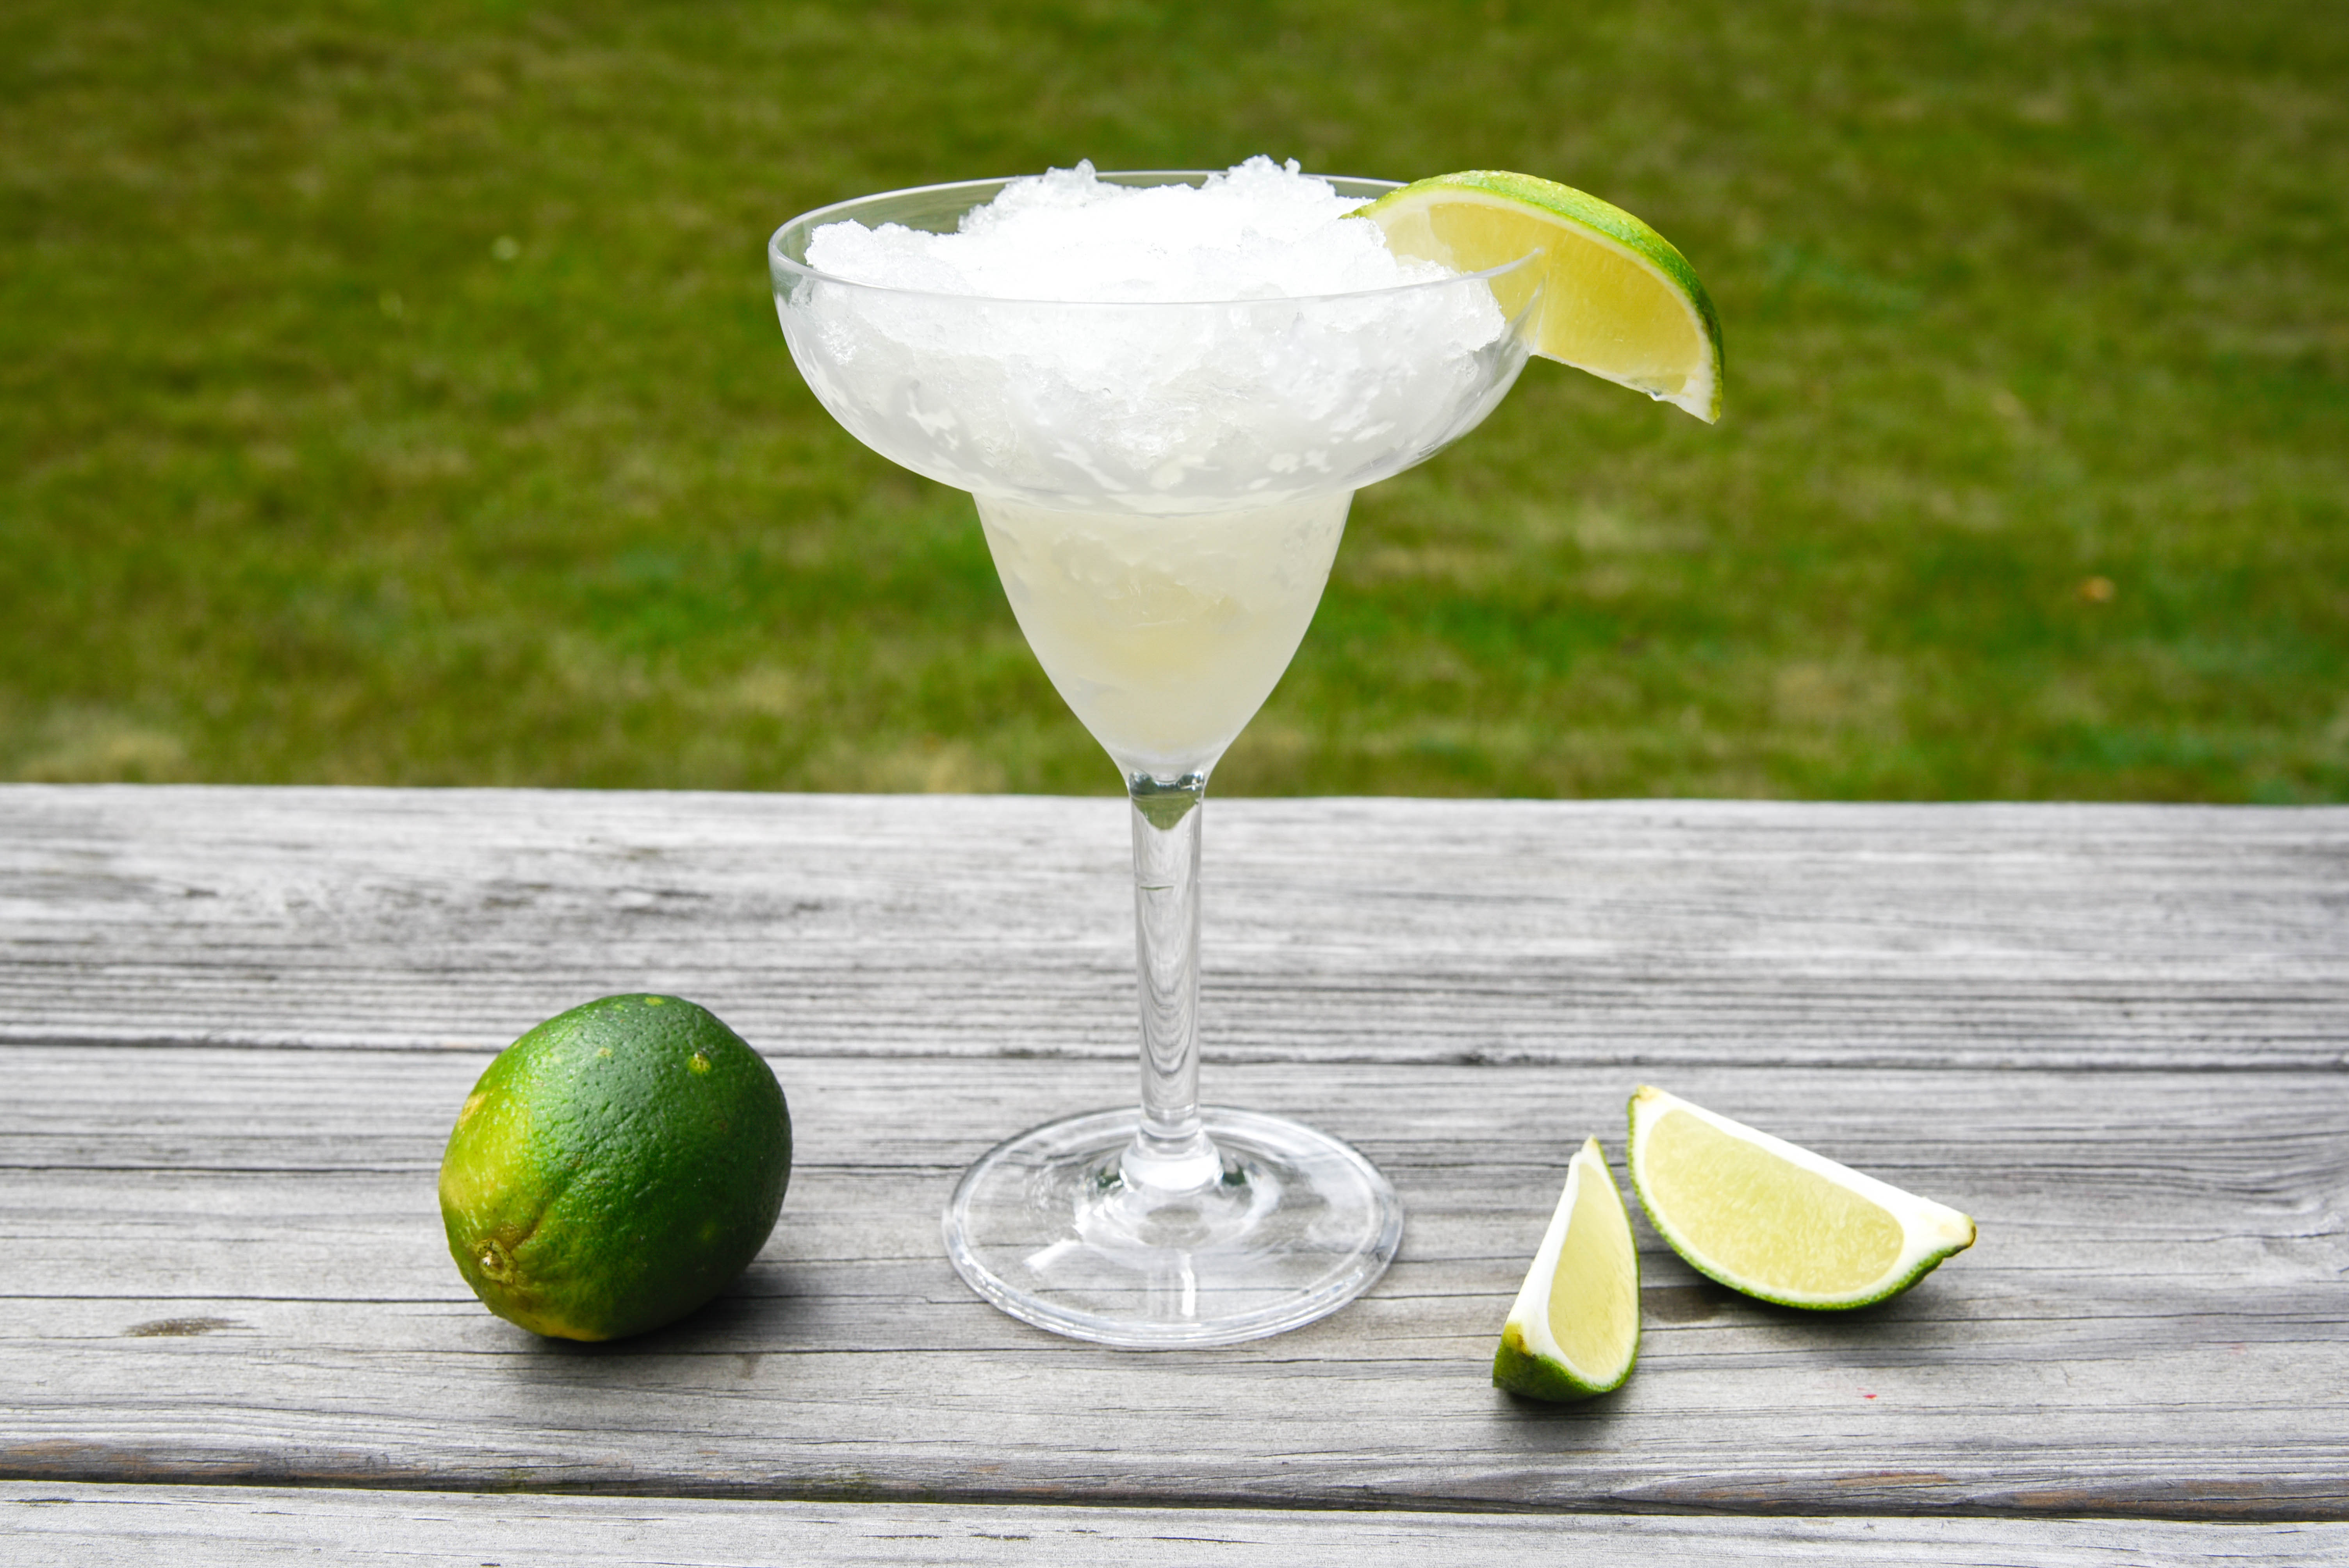 An icy margarita with limes.